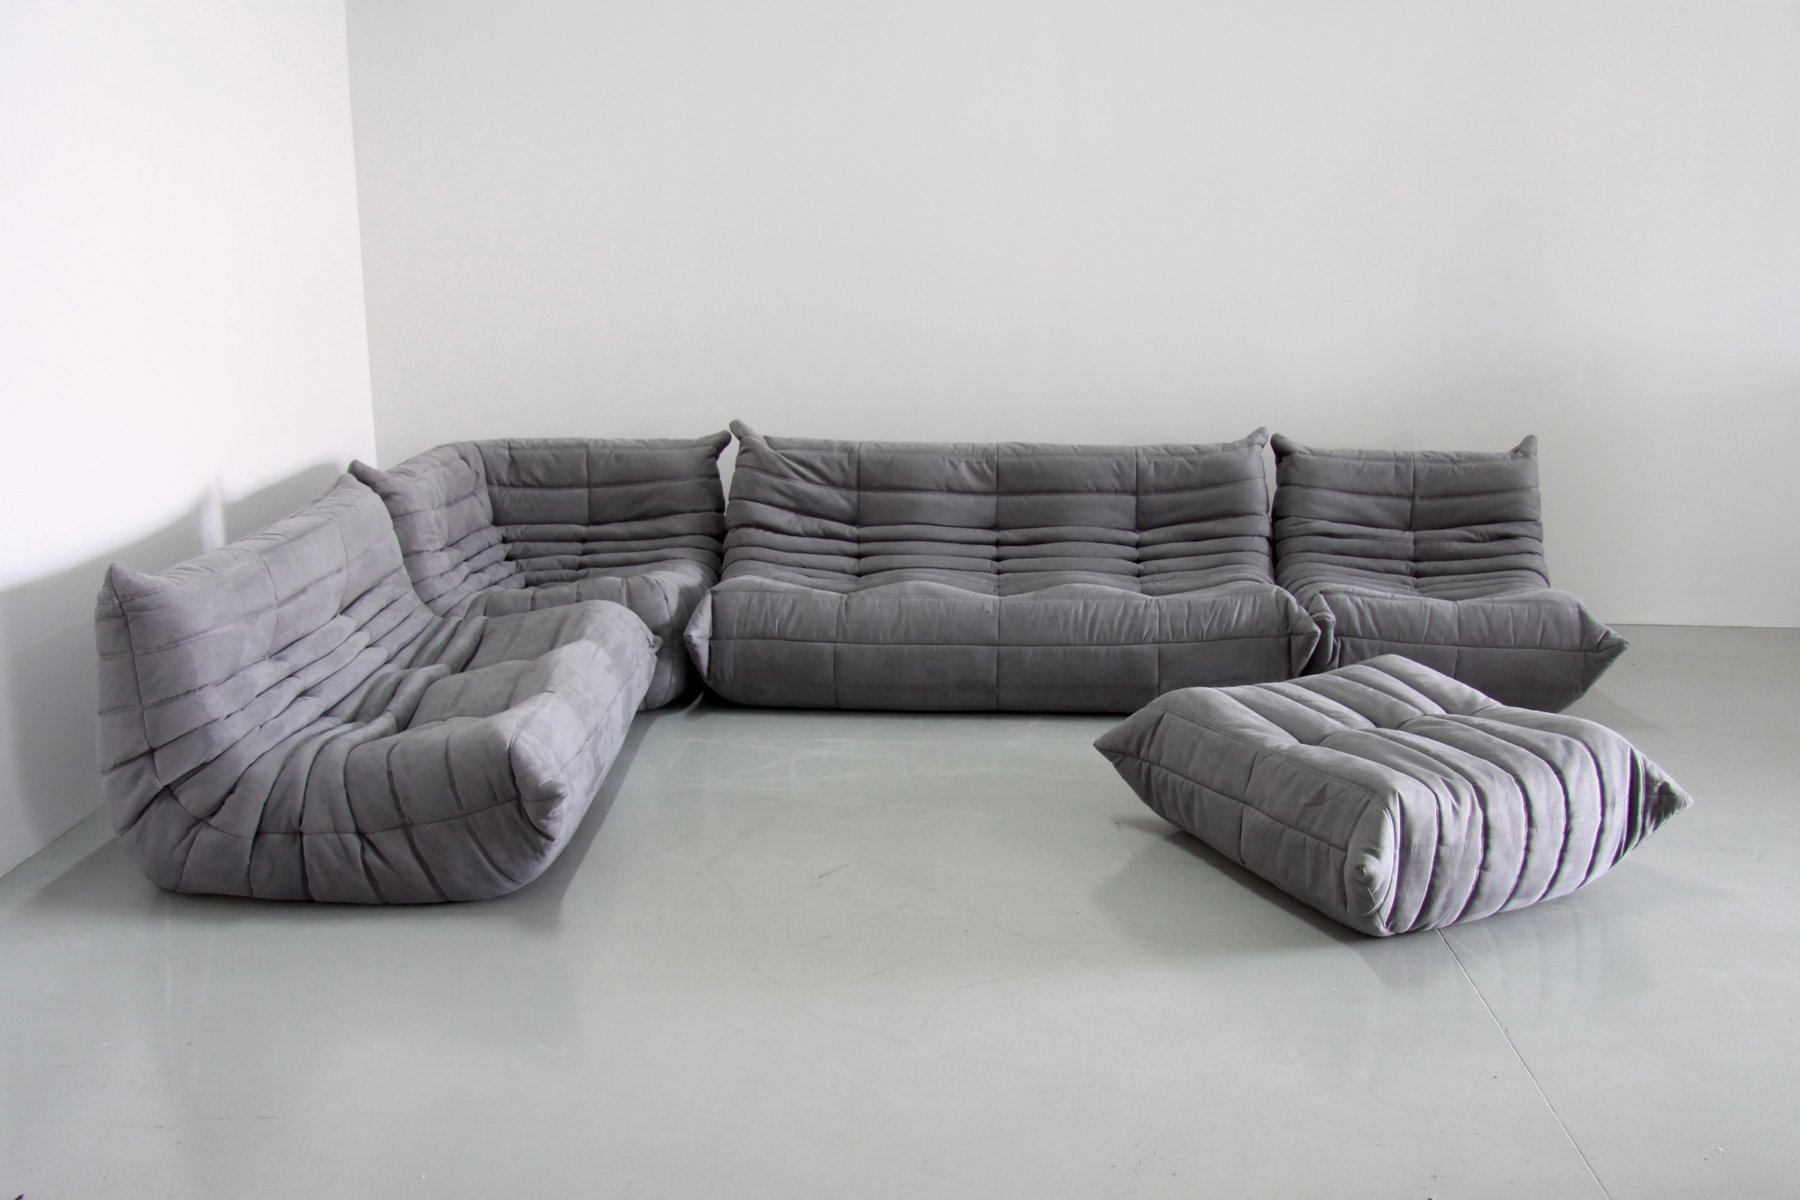 ligne roset togo sofa togo sofas designer michel ducaroy. Black Bedroom Furniture Sets. Home Design Ideas